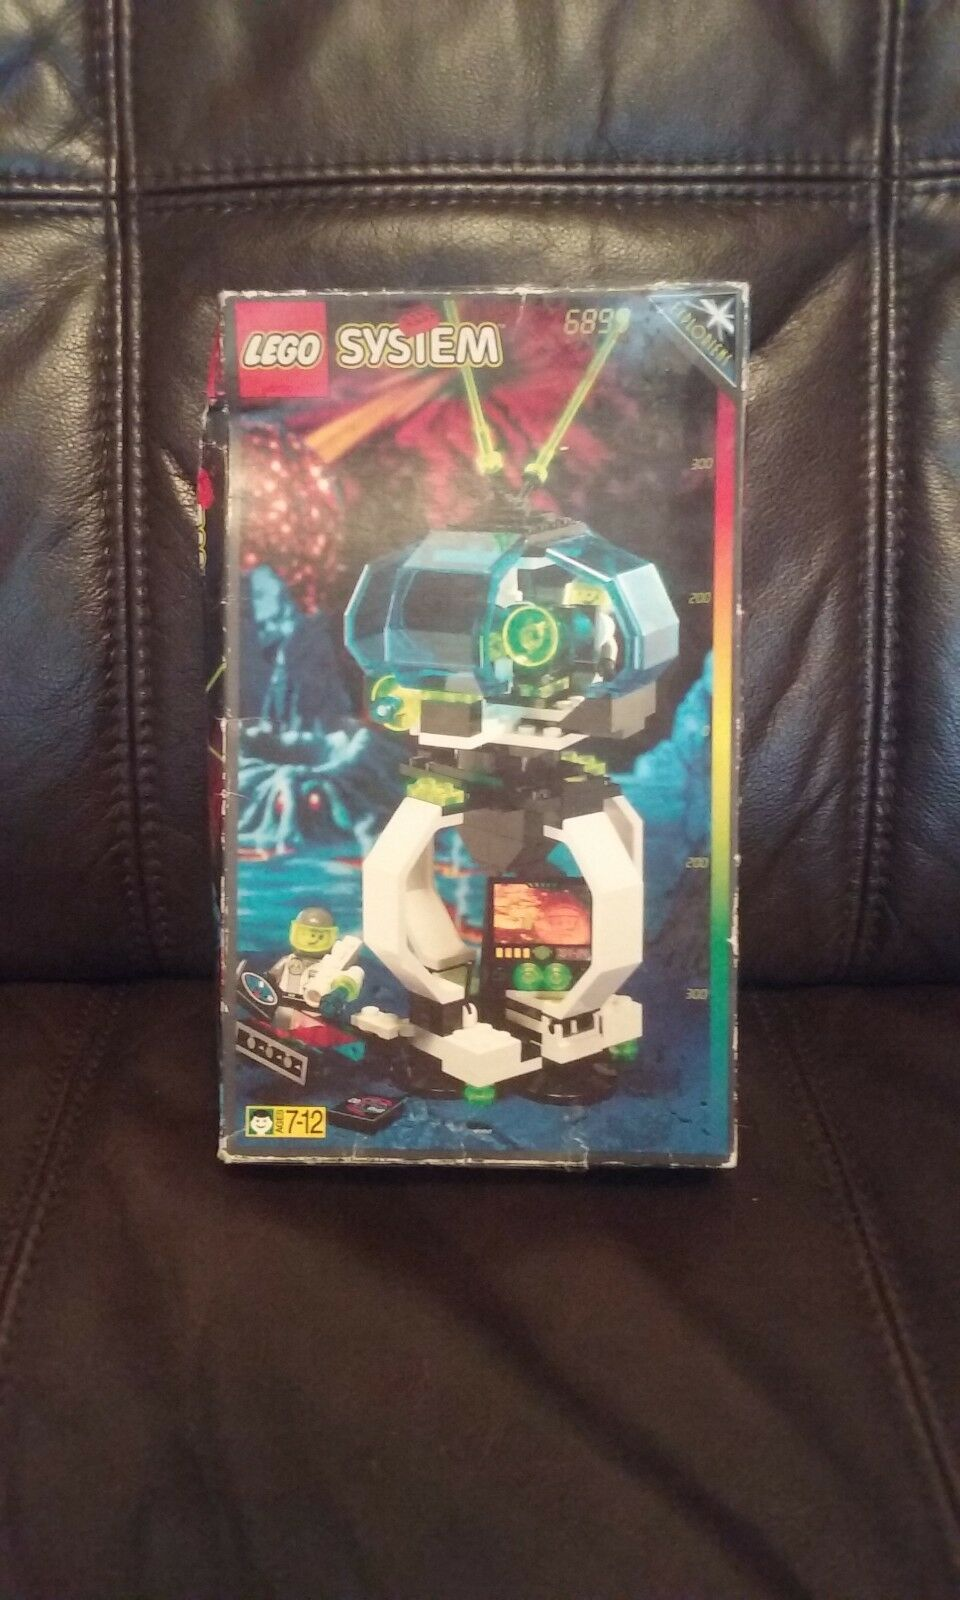 NEW Very Rare 1996 Vintage Lego System Set Number 6899